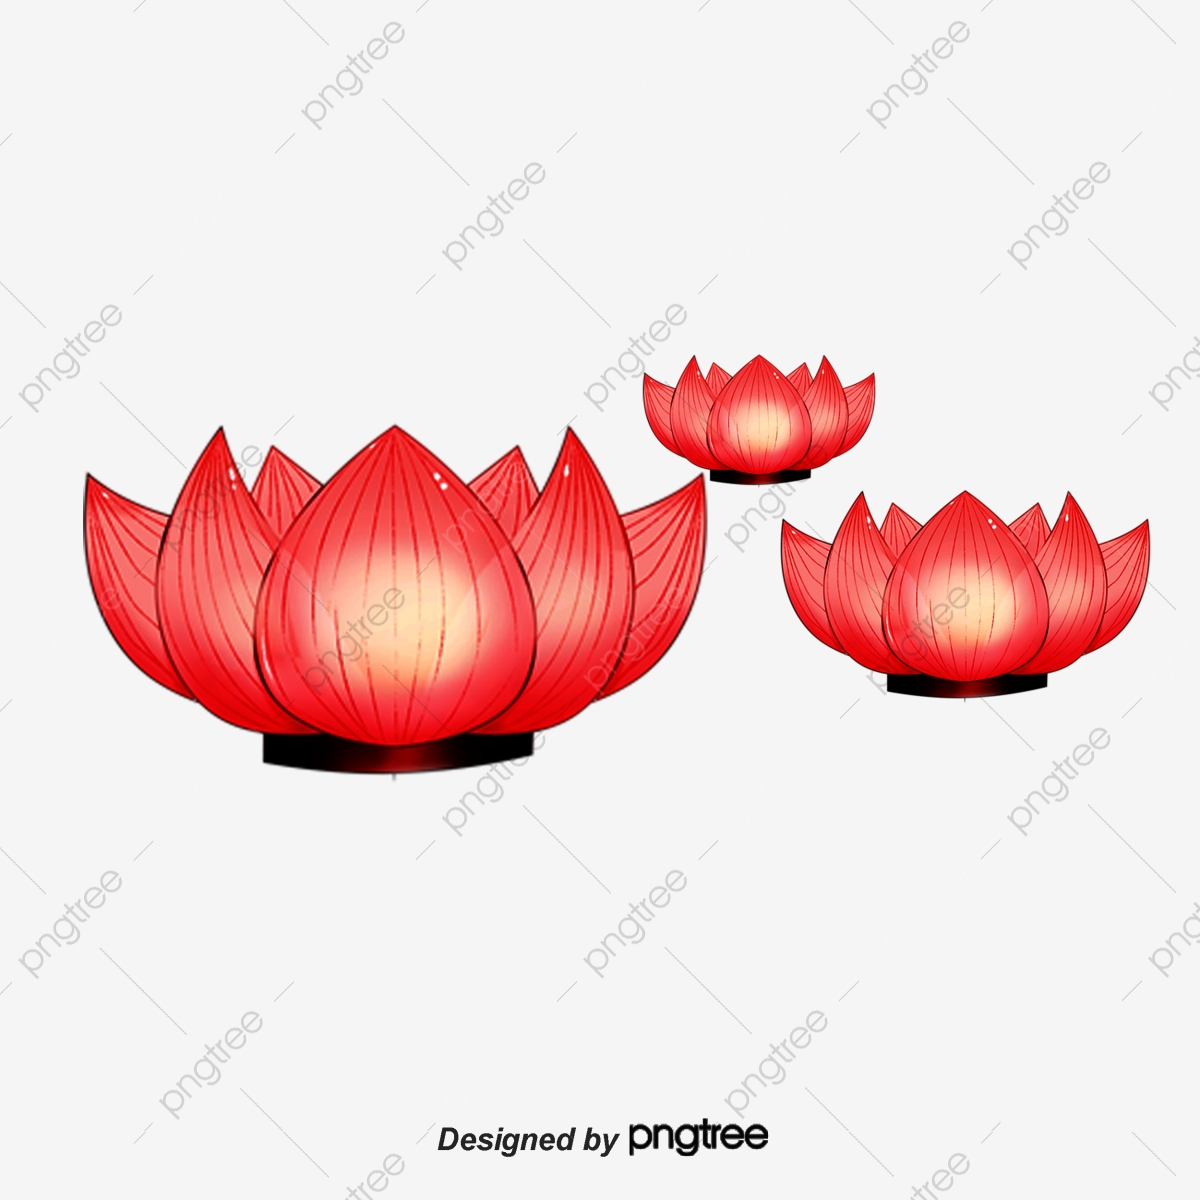 Vermilion Lantern Festival Chinese Style Soft Pale Aesthetic Cartoon Lotus Lantern Decoration Red Lotus Flower Festive Lantern Png Transparent Clipart Image And Psd File For Free Download